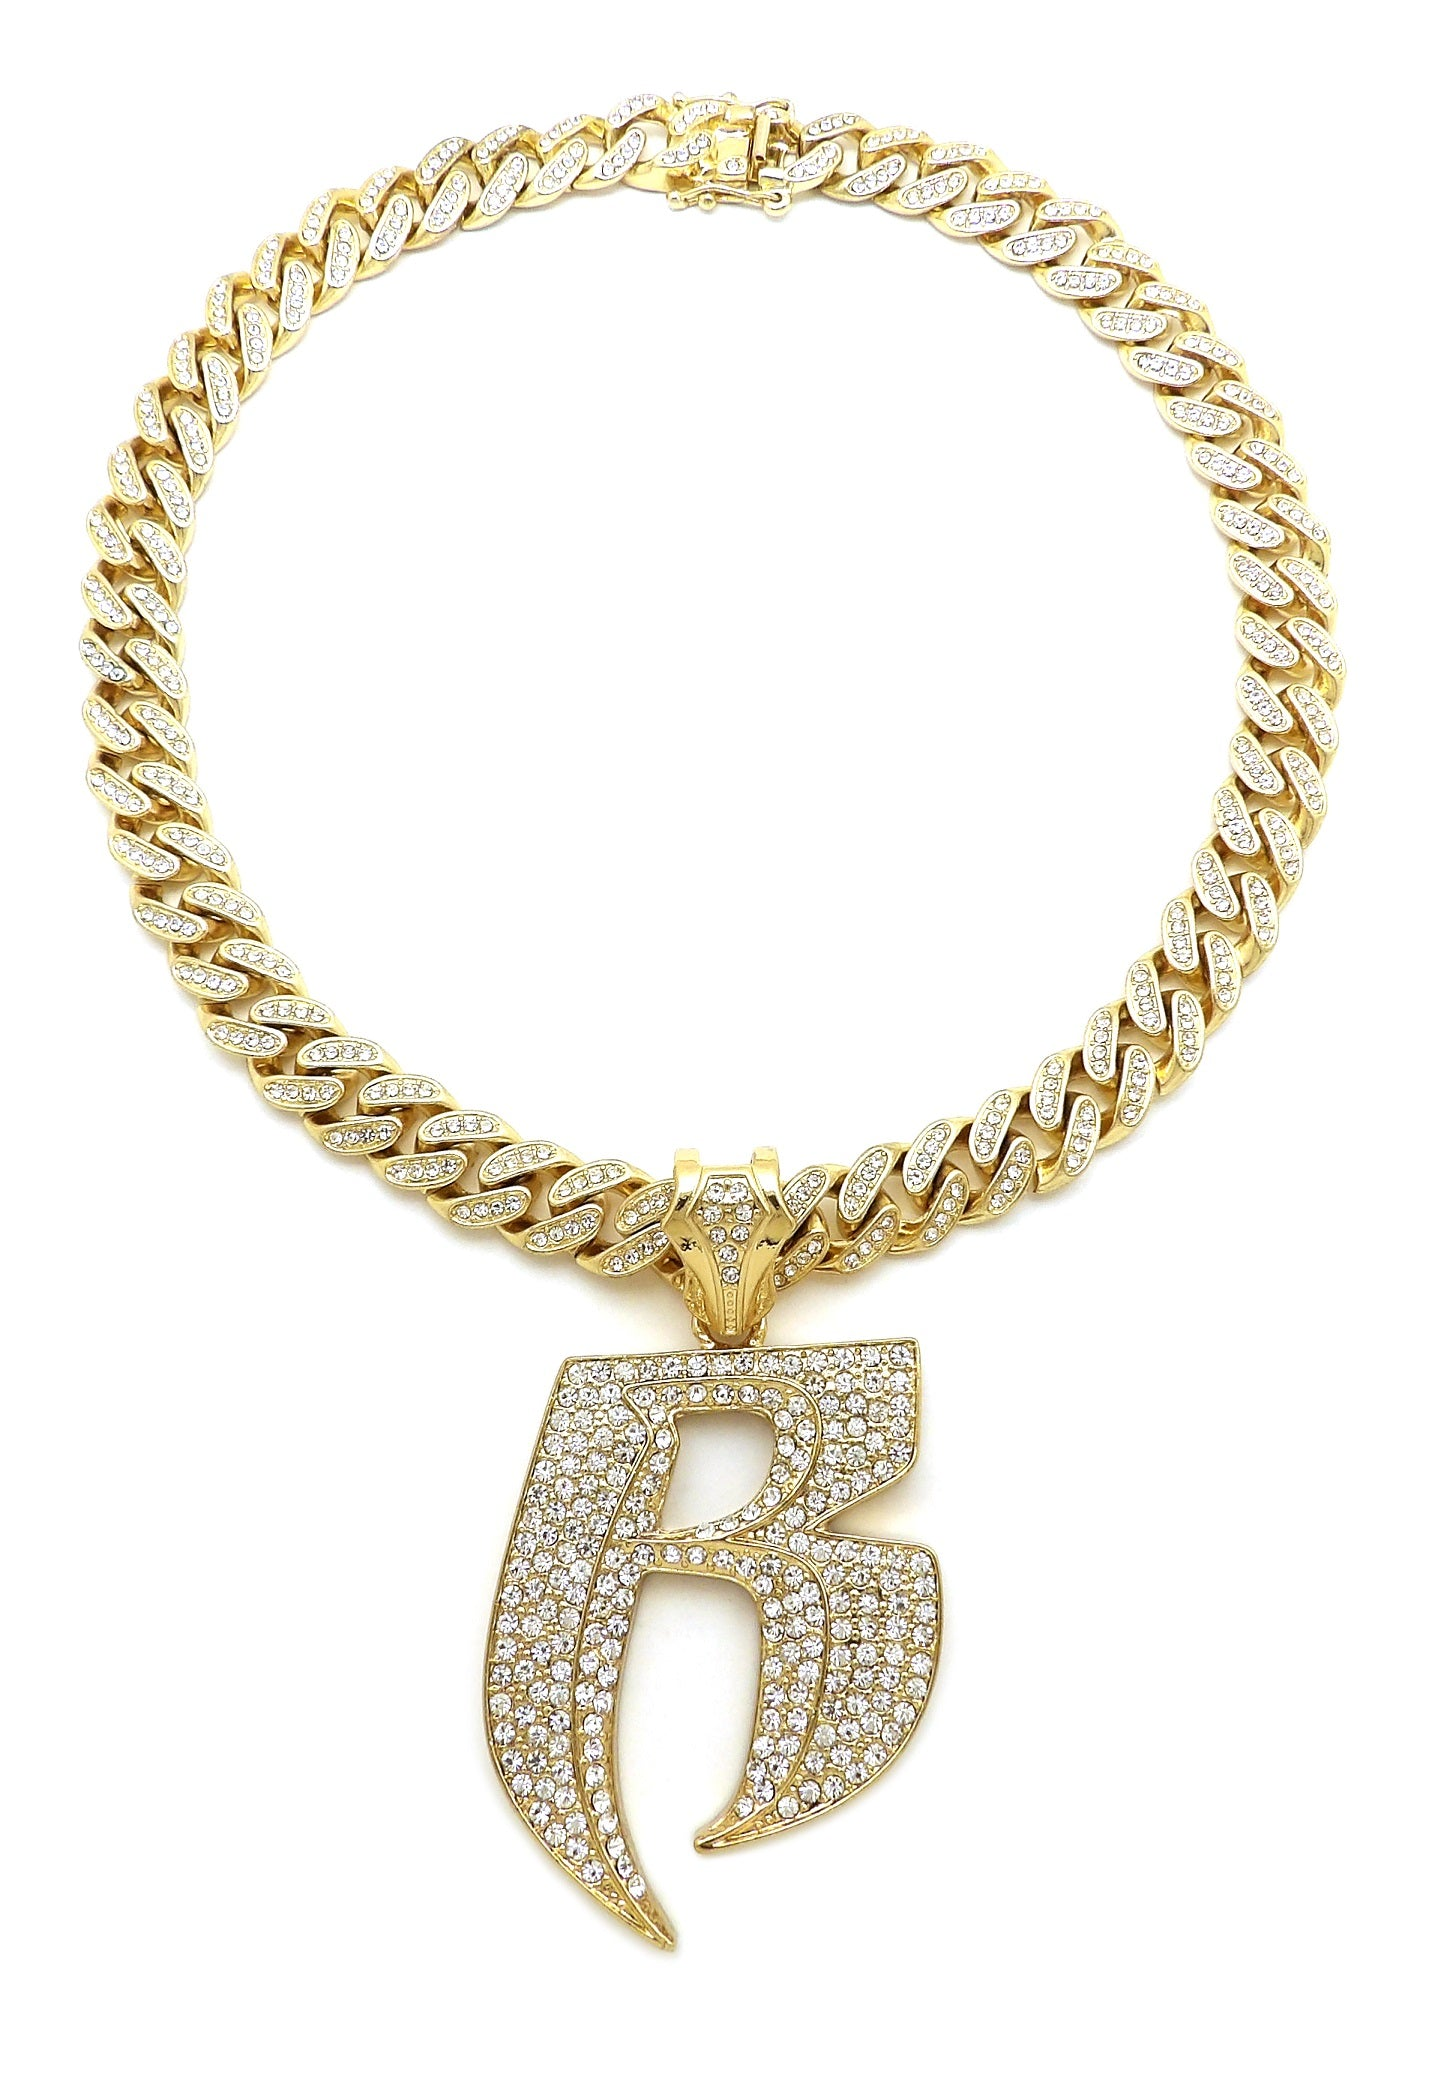 14K Iced Out Ruff Ryders Neklace On Miami Cuban